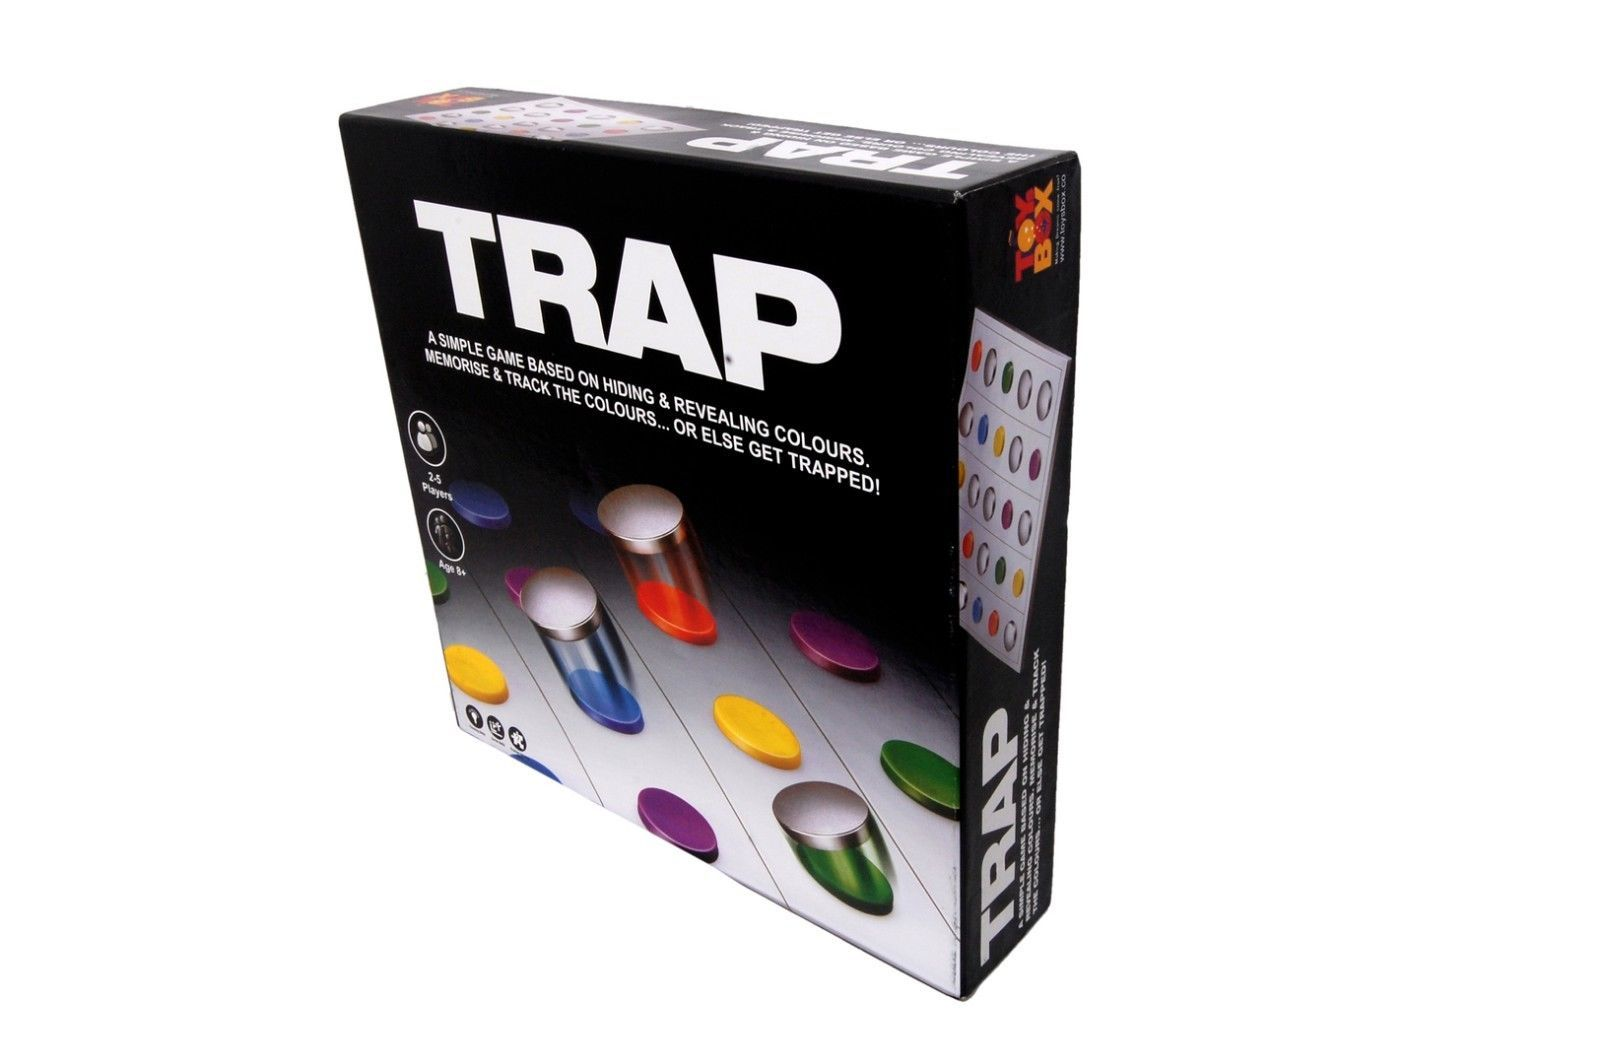 Trap Game 2-5 Players Age 8+ Toys Box Indoor image 3